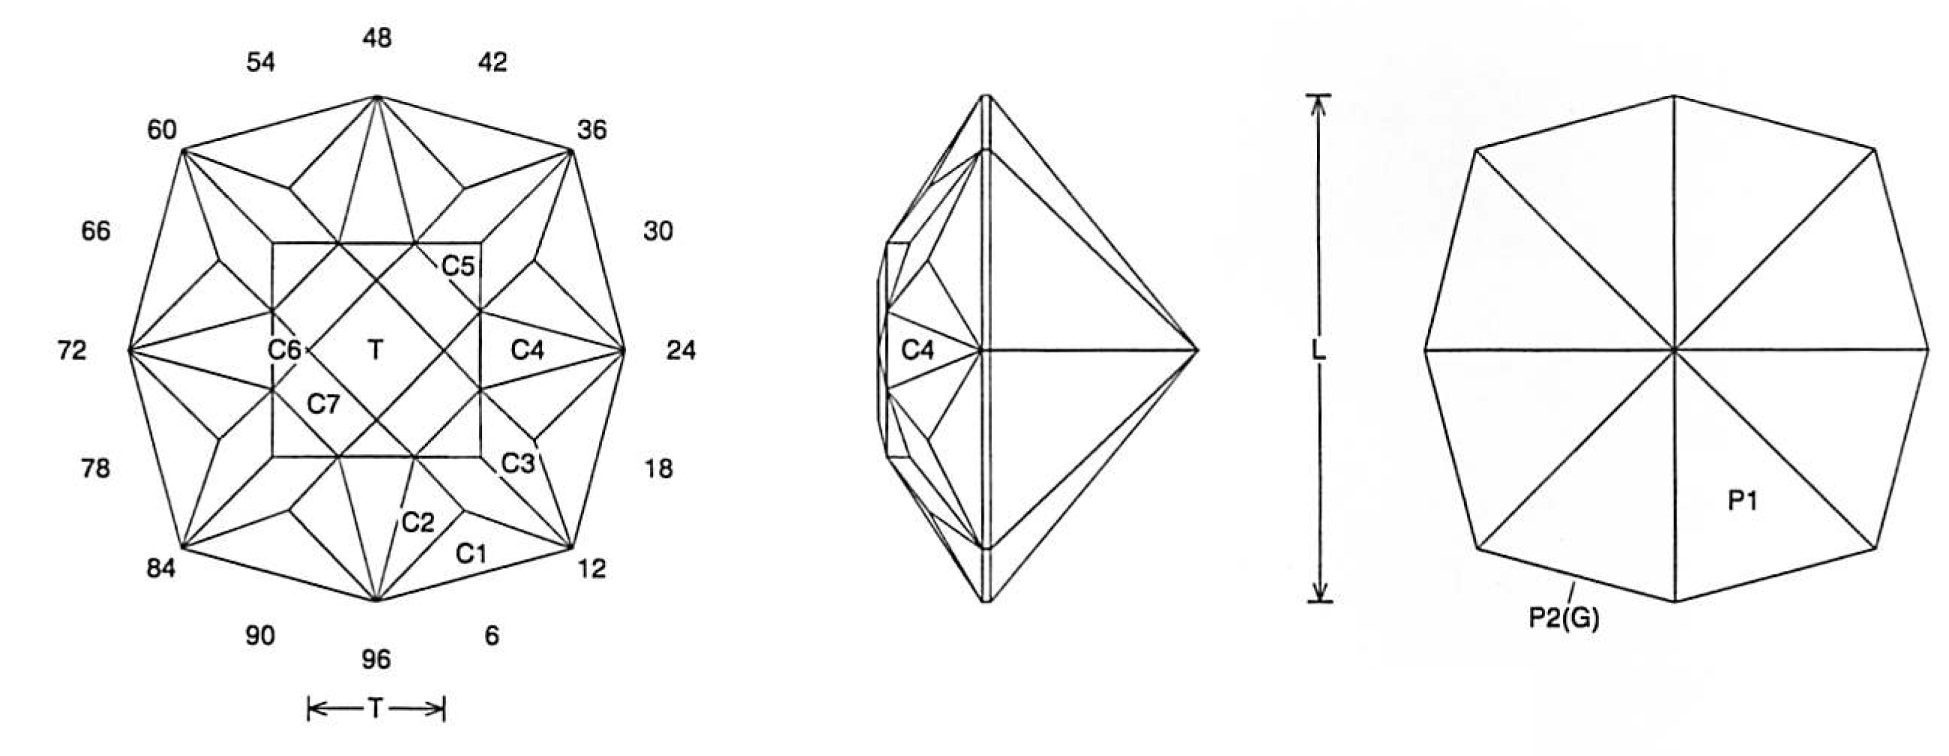 Faceting Design Diagram  Parity - Quartz